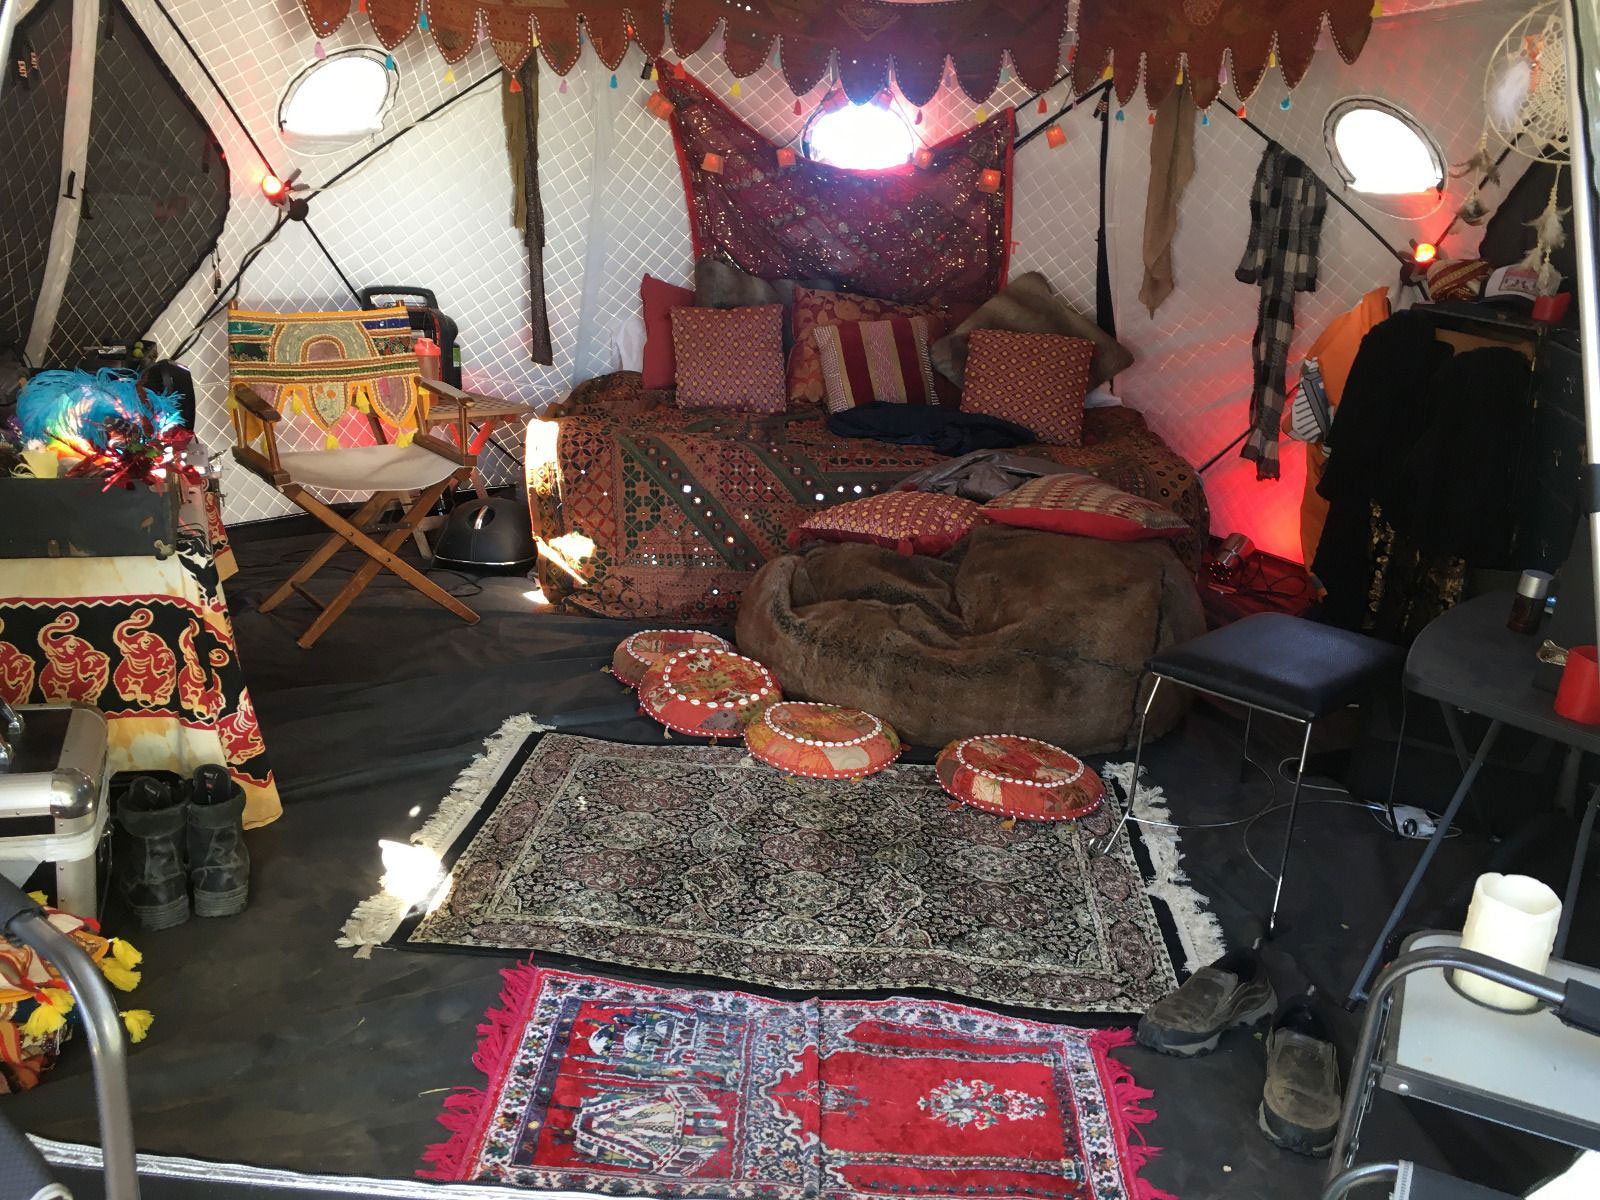 Shiftpod XL Burning Man glamping tent